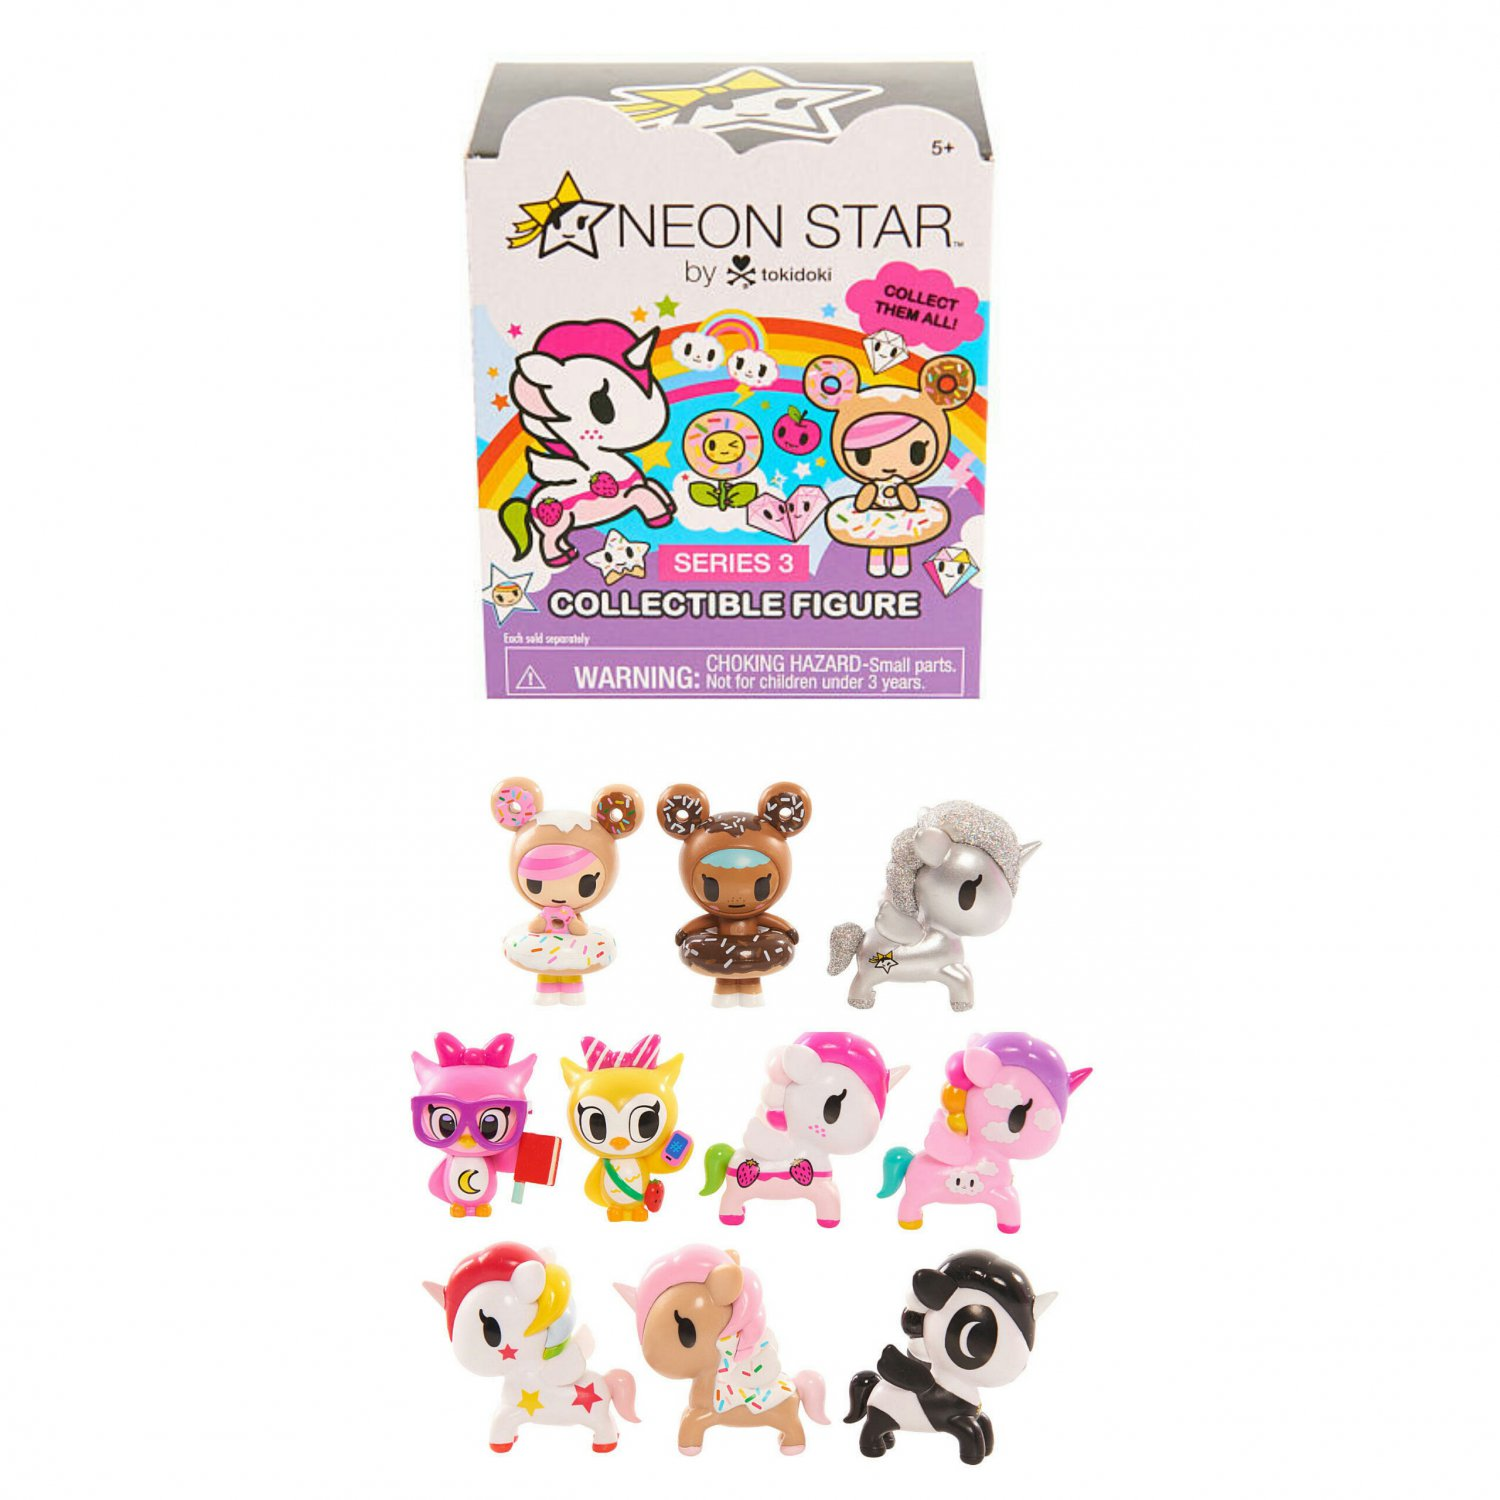 Neon Star by Tokidoki Series 3 Collectible Figures Blind Box - Unicorno �10 By Just Play